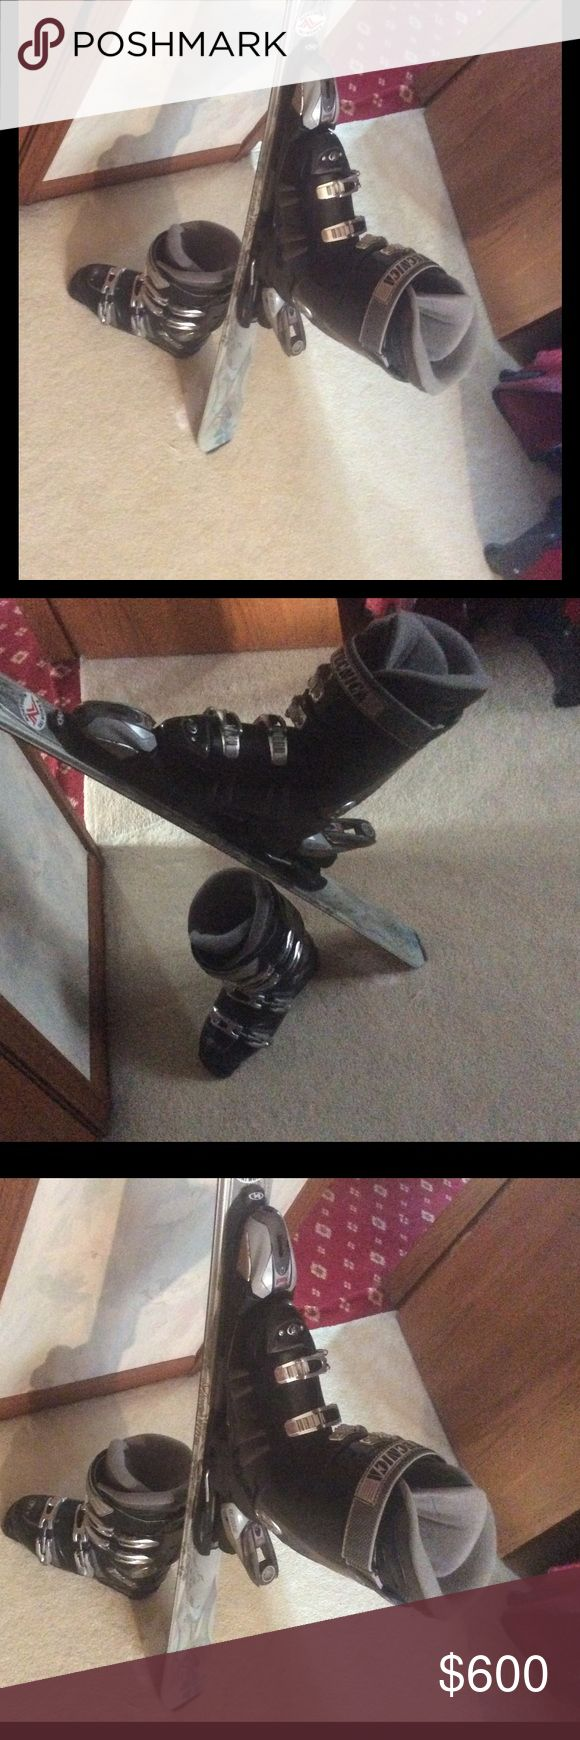 Skis & Boots K2 Skis & Tecnica Ski boots Other